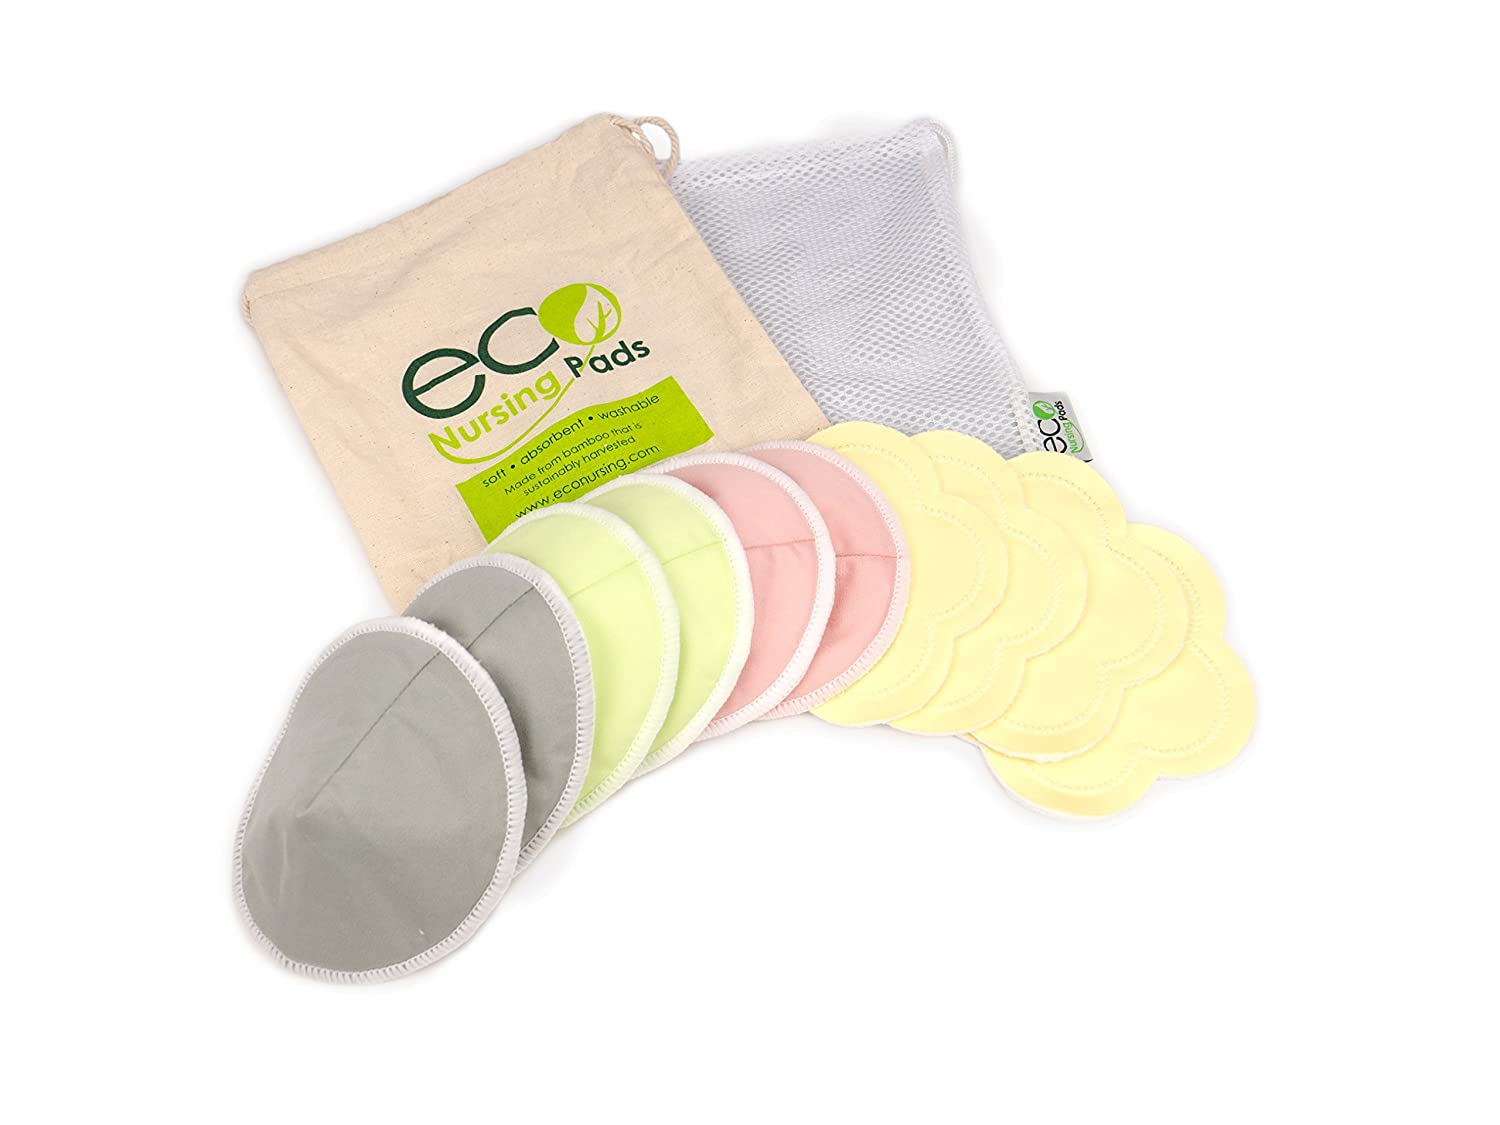 Contoured Washable Reusable Bamboo Nursing Pads | Organic Bamboo Breastfeeding Pads, Ultra-Soft Velvet Flower Pads | 10 Pack with 2 BONUS Pouches & FREE E-Book | Perfect Baby Shower Gift EcoNursingPads